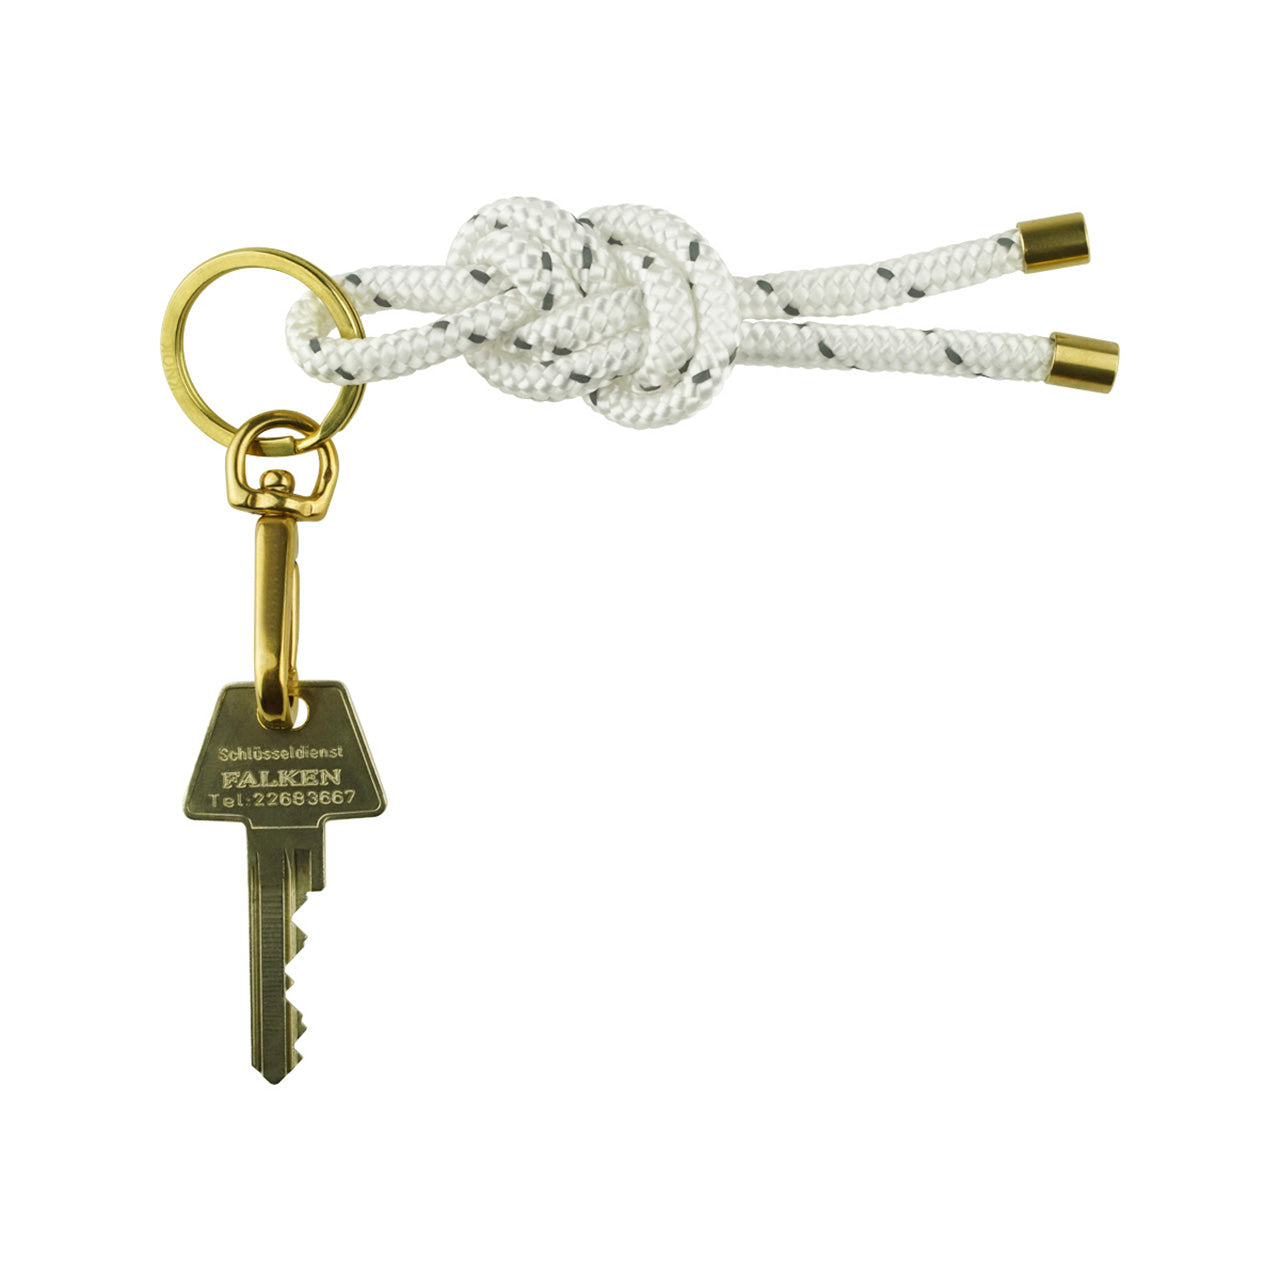 KNOK-KEY-KNOT-Whitereflect